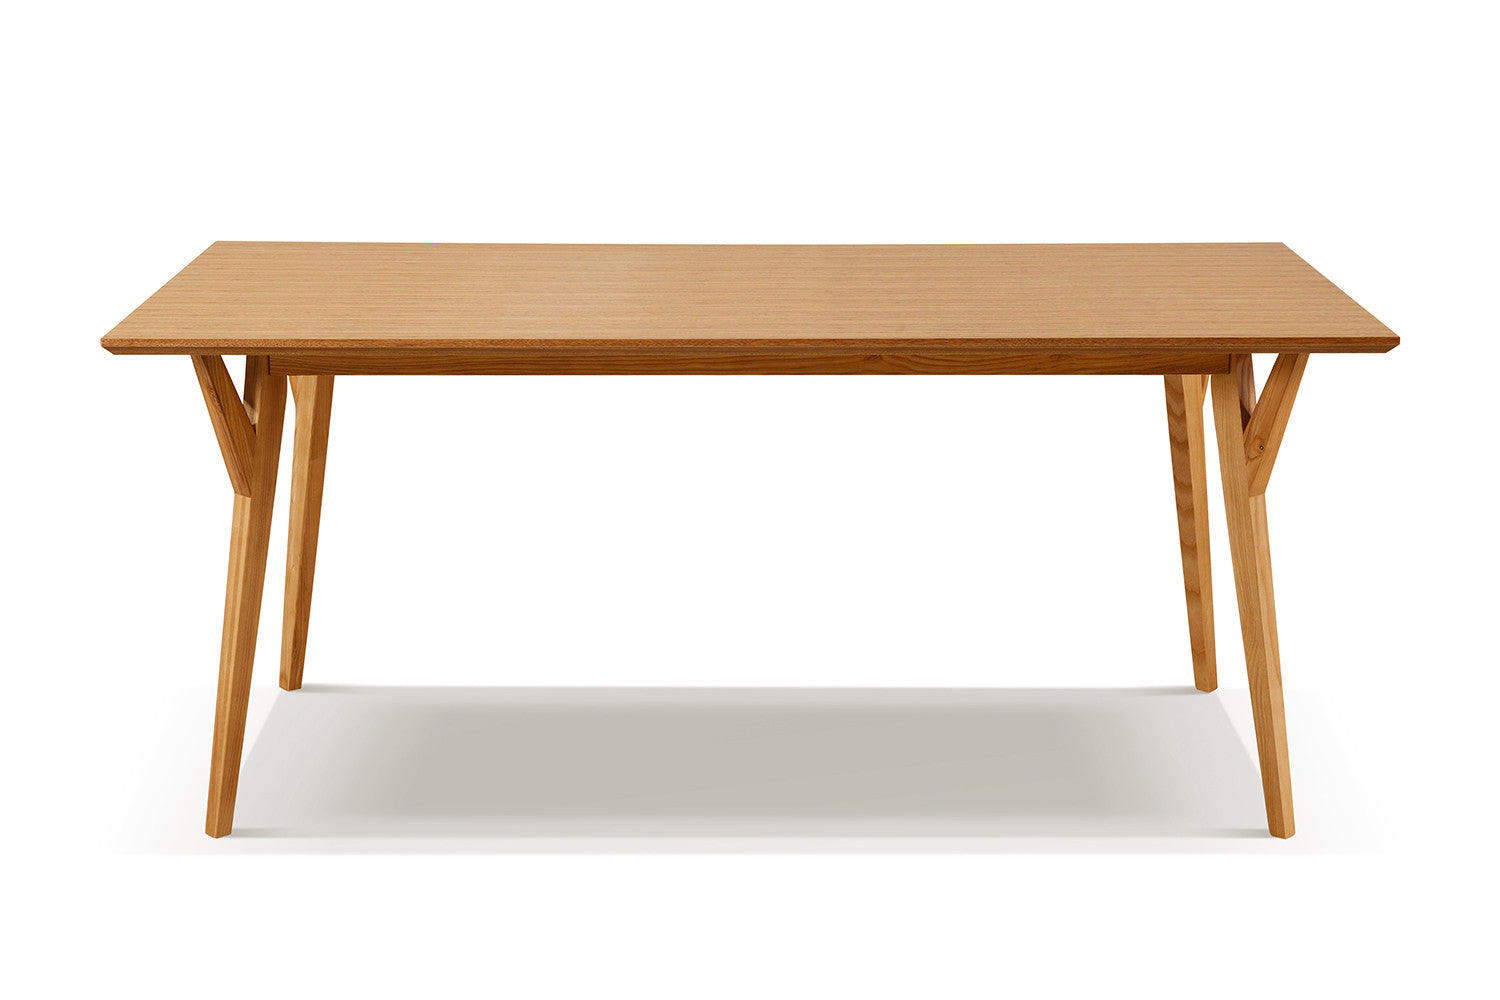 Table salle a manger scandinave for Table salle a manger yvrai